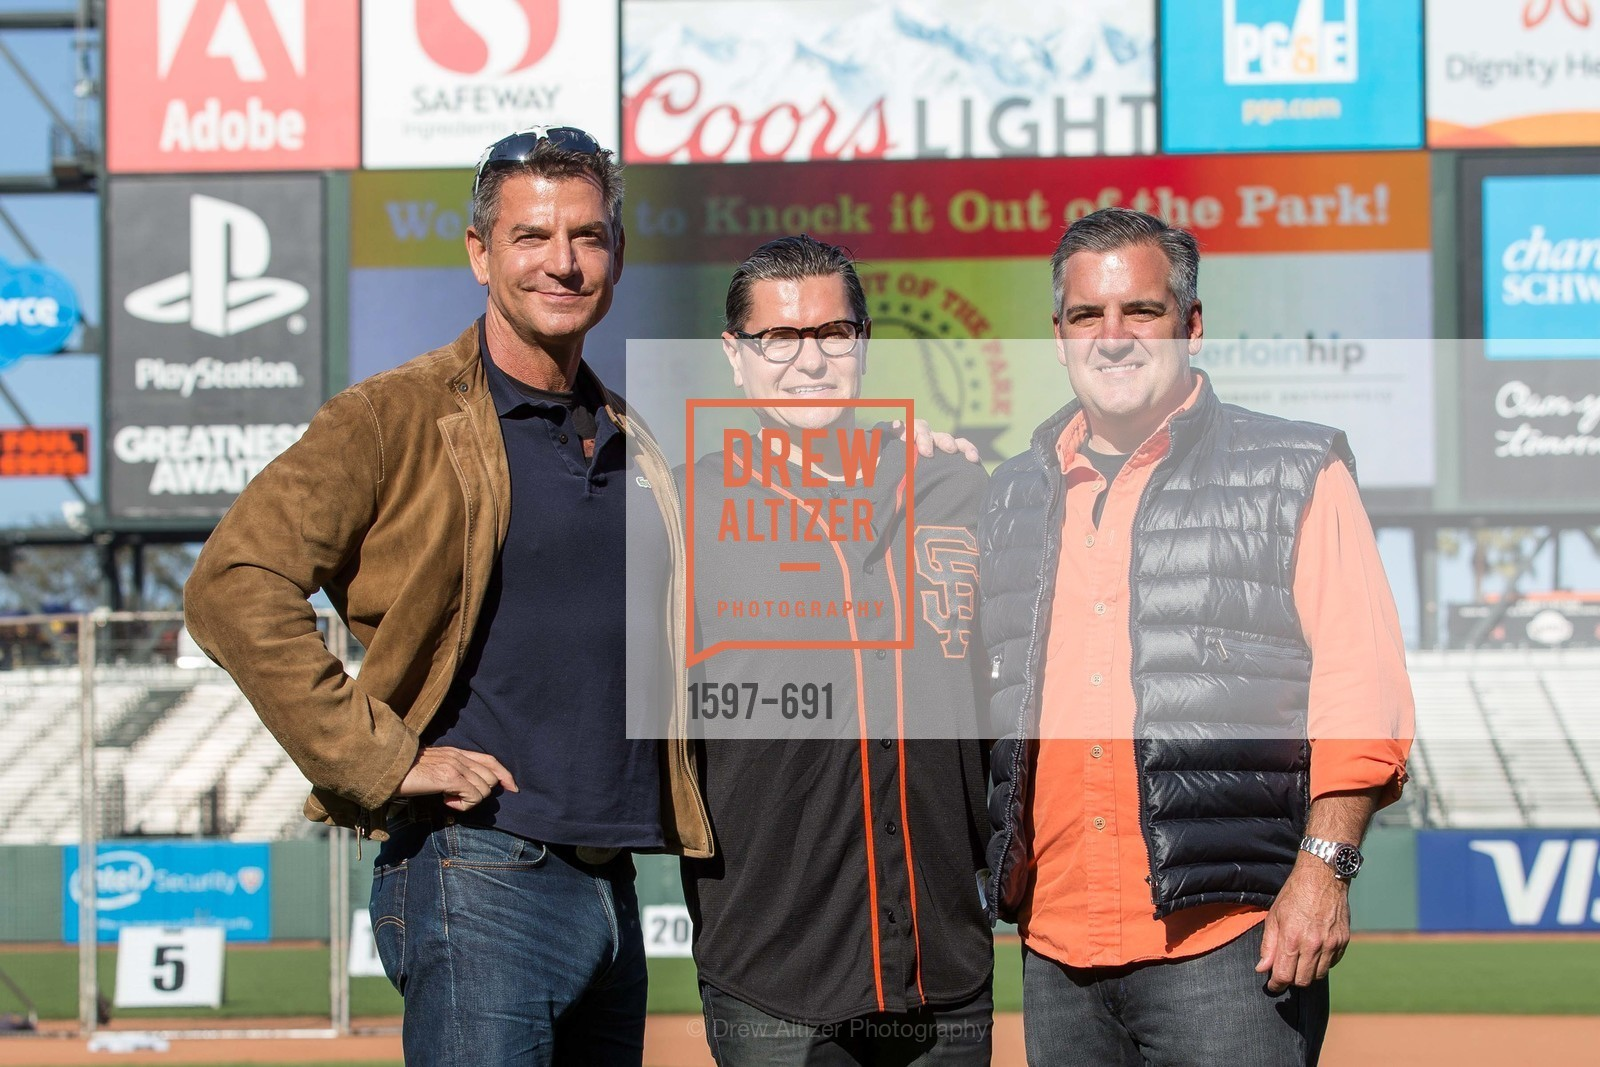 David Kensington, Christopher Meza, Tim Graffigna, ST. FRANCIS FOUNDATION'S Knock It Out of the Park, US. AT&T Park, June 4th, 2015,Drew Altizer, Drew Altizer Photography, full-service agency, private events, San Francisco photographer, photographer california